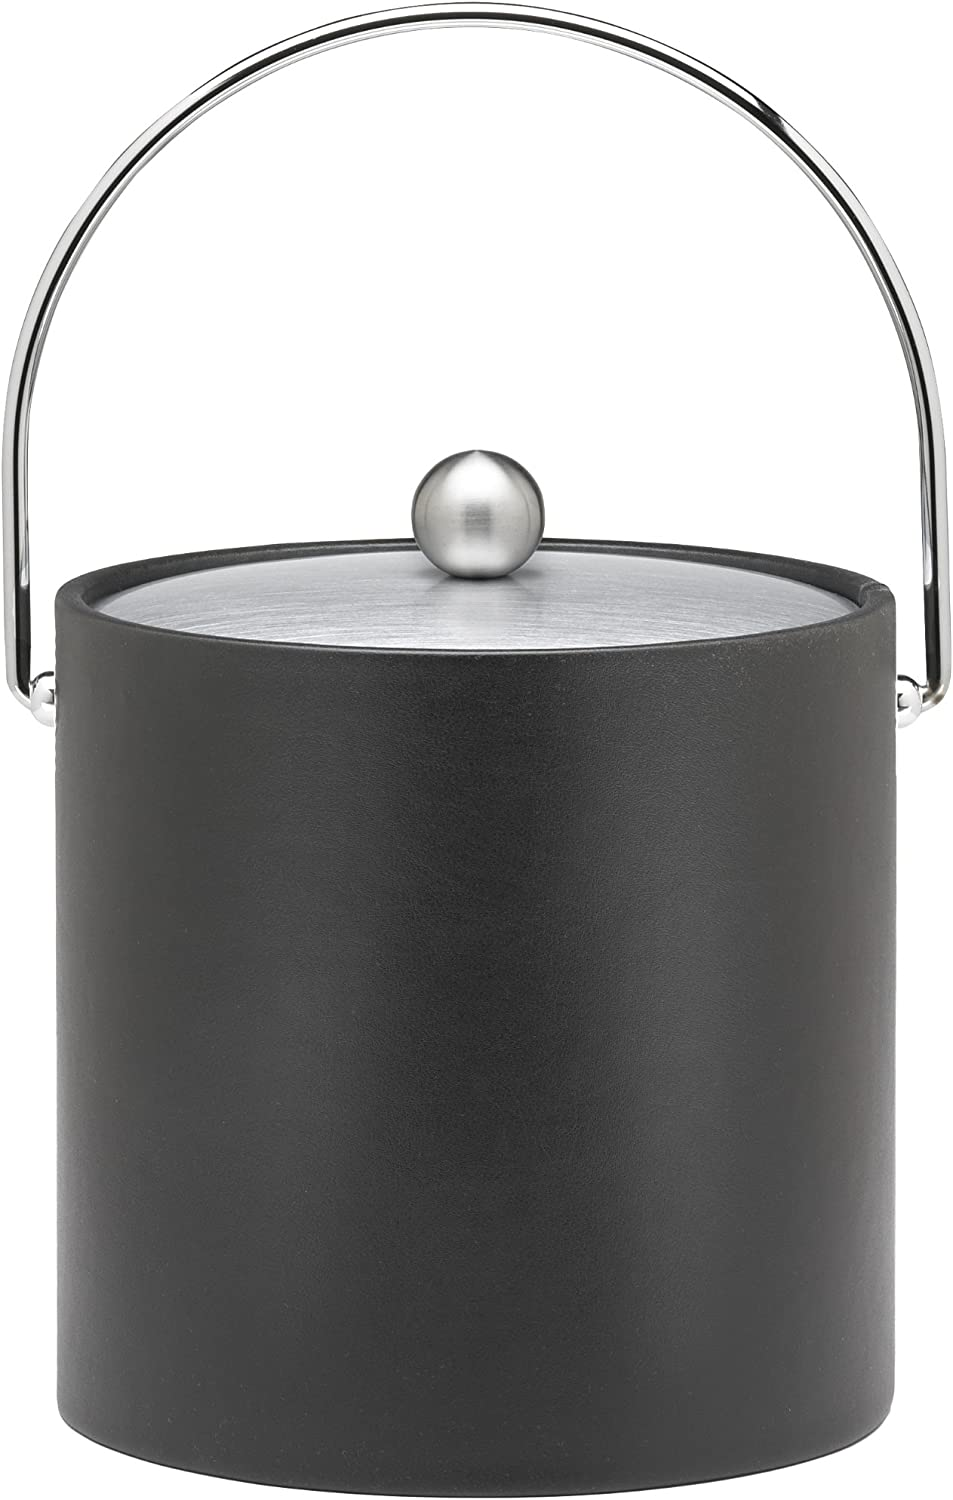 Kraftware Ice Bucket with Chrome Lid, Bale Handle and Astro Ball Knob, Black - 3 Quart